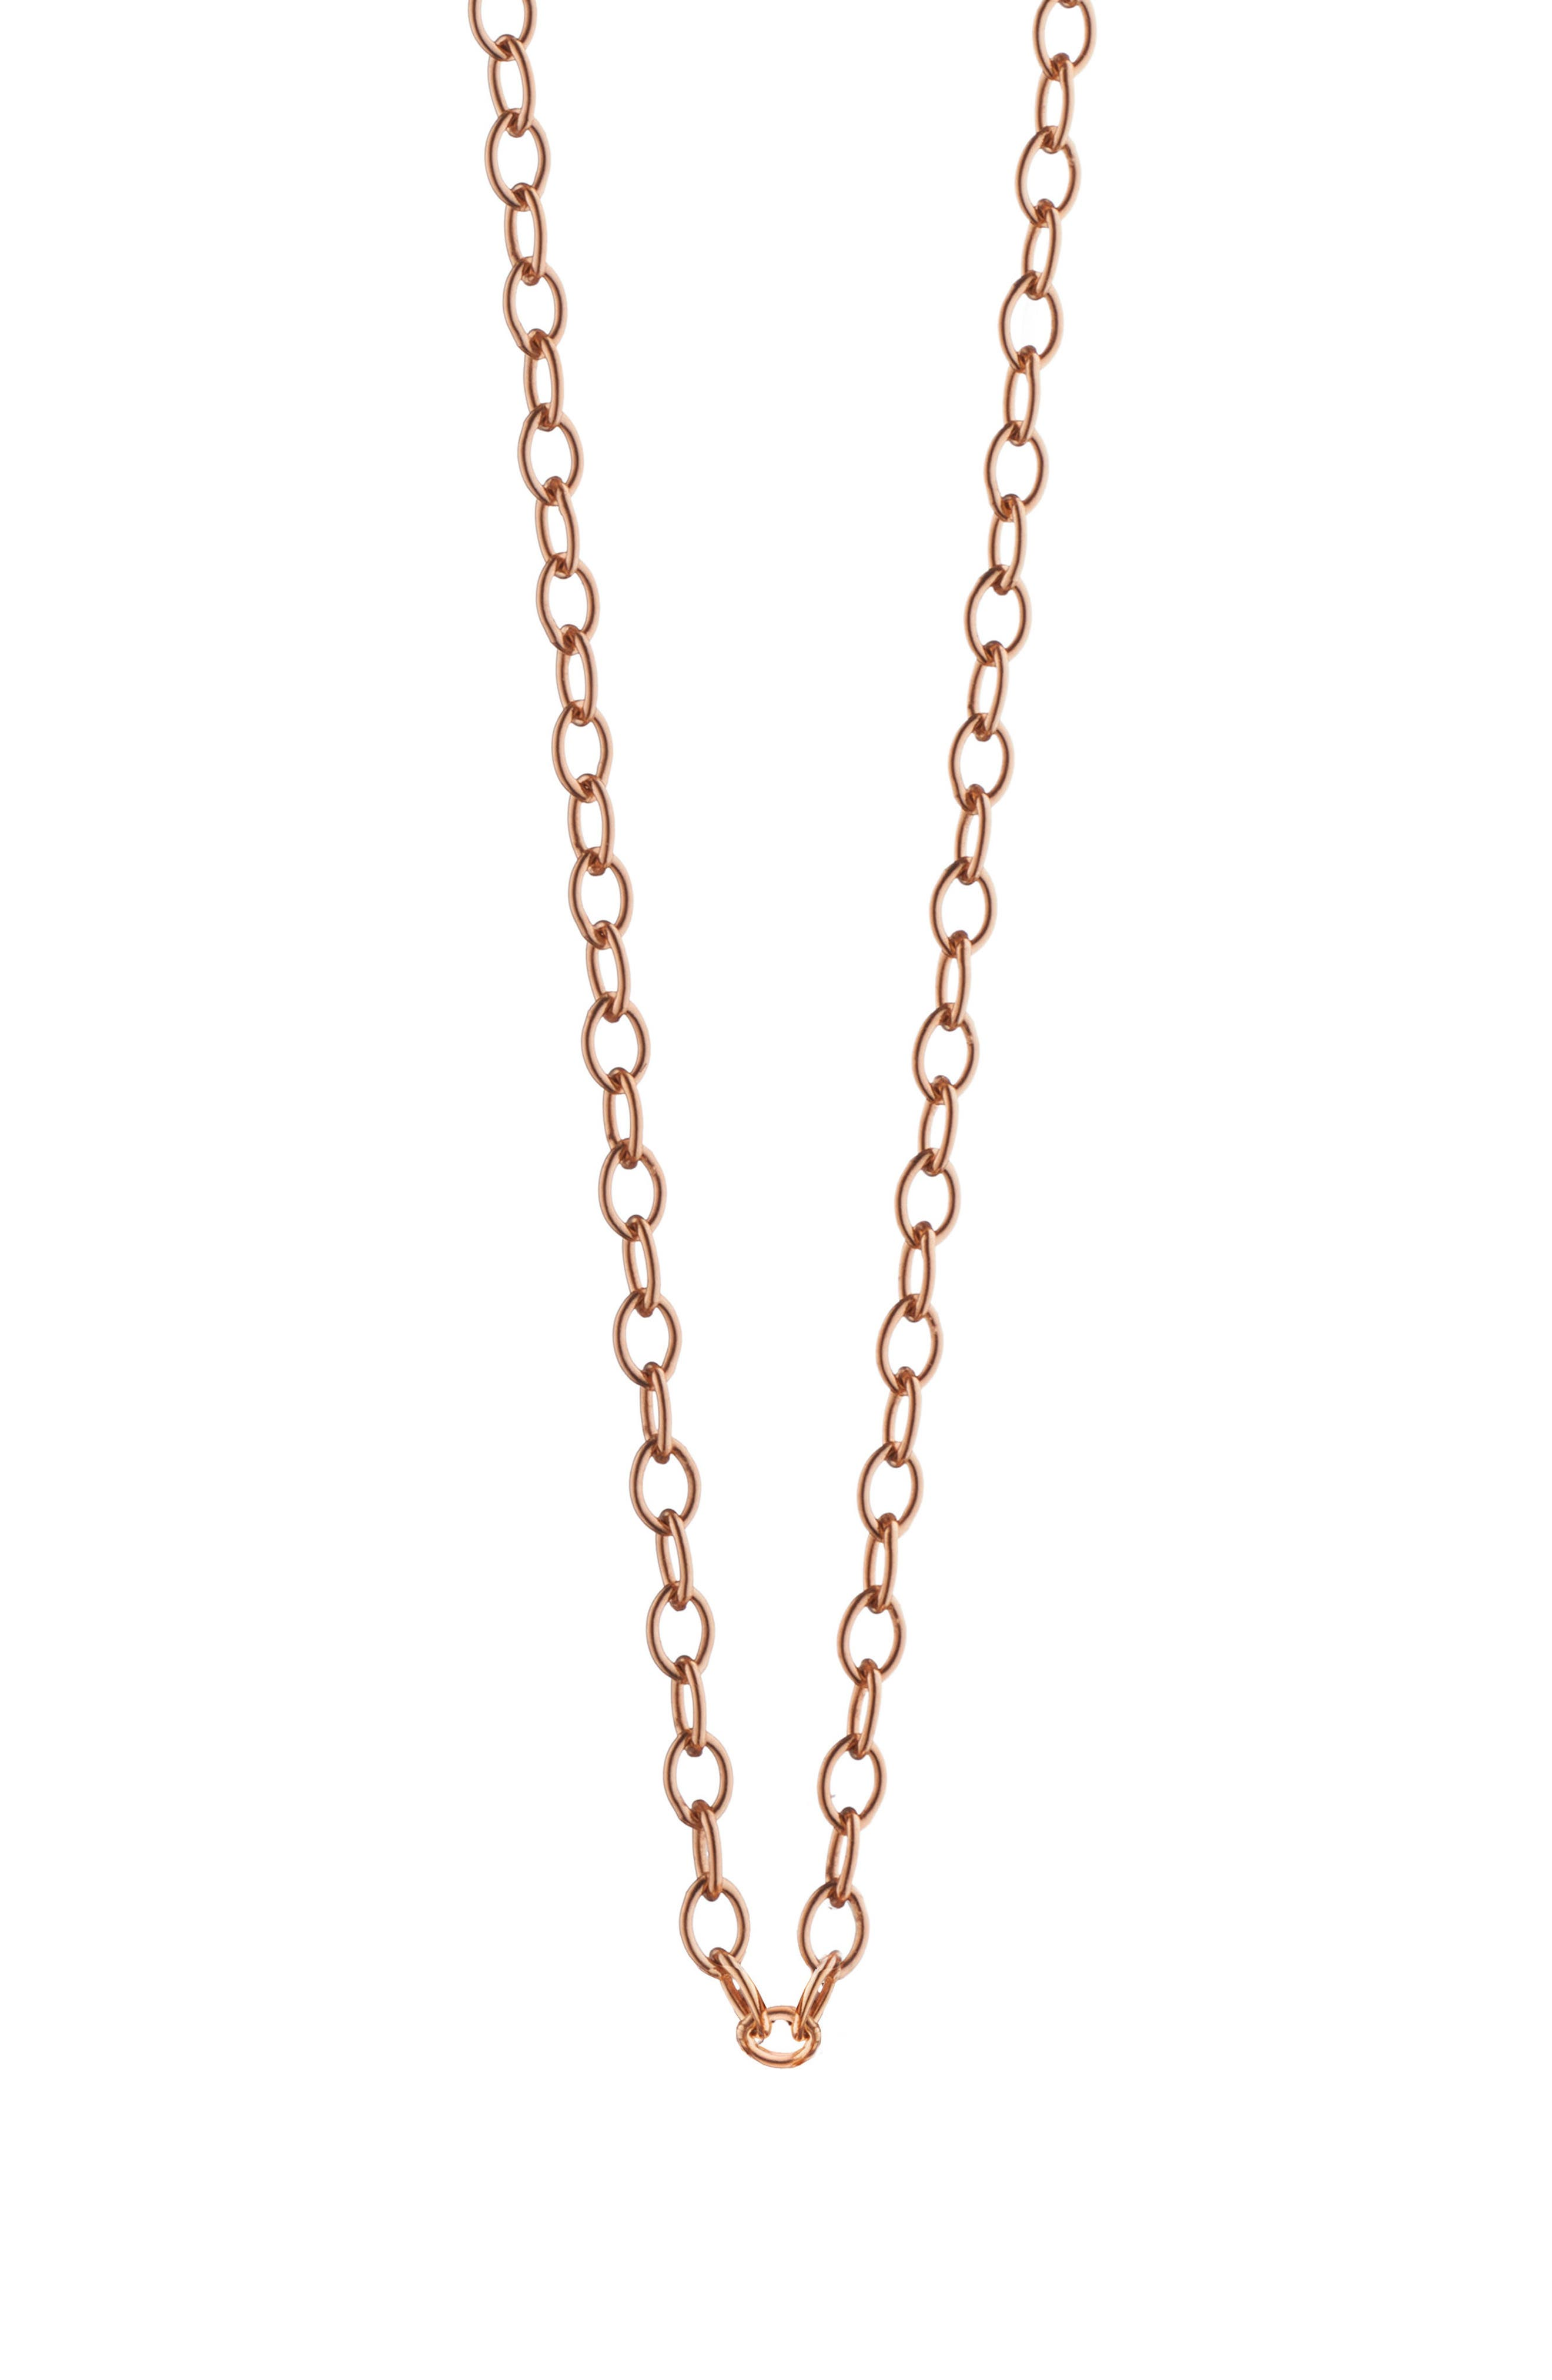 Oval Link 18K Gold Chain,                             Main thumbnail 1, color,                             18K Rose Gold